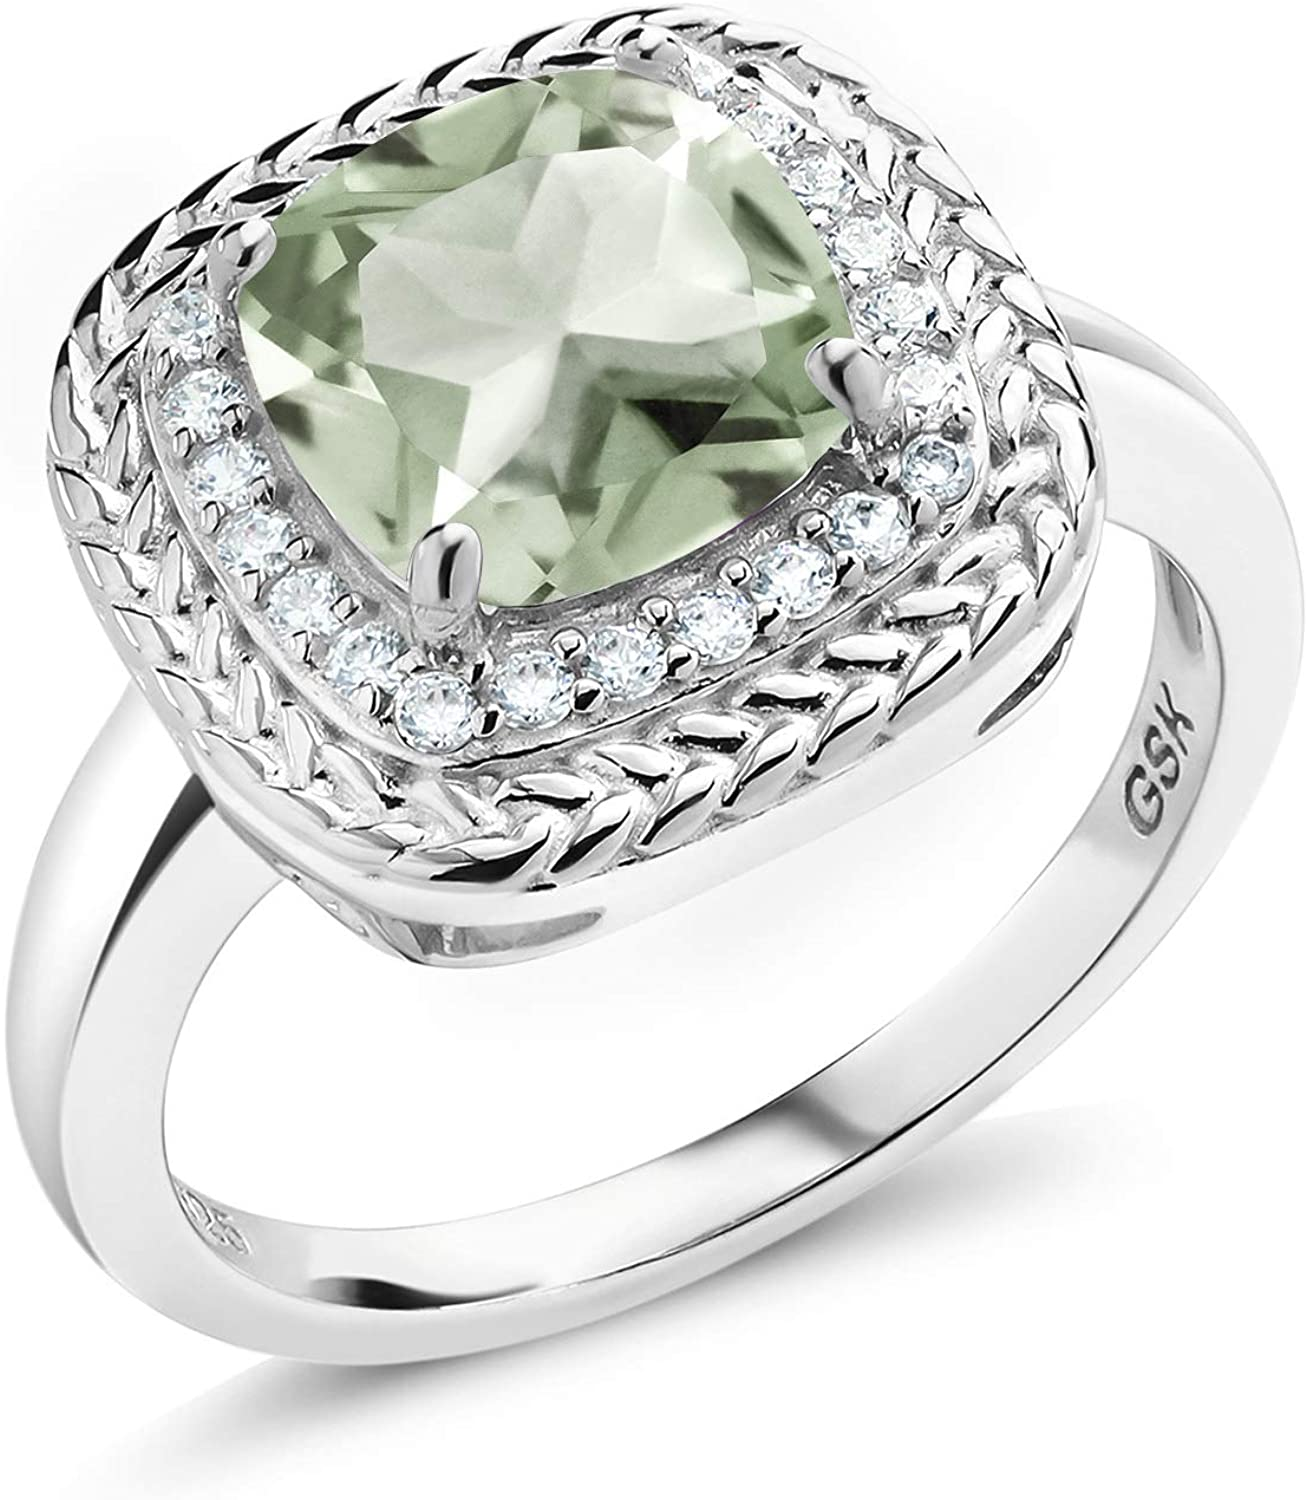 Gem Stone King 925 Sterling Silver Green Prasiolite Women Engagement Ring (2.05 Ct Cushion Cut Gemstone Birthstone, Available in size 5, 6, 7, 8, 9)